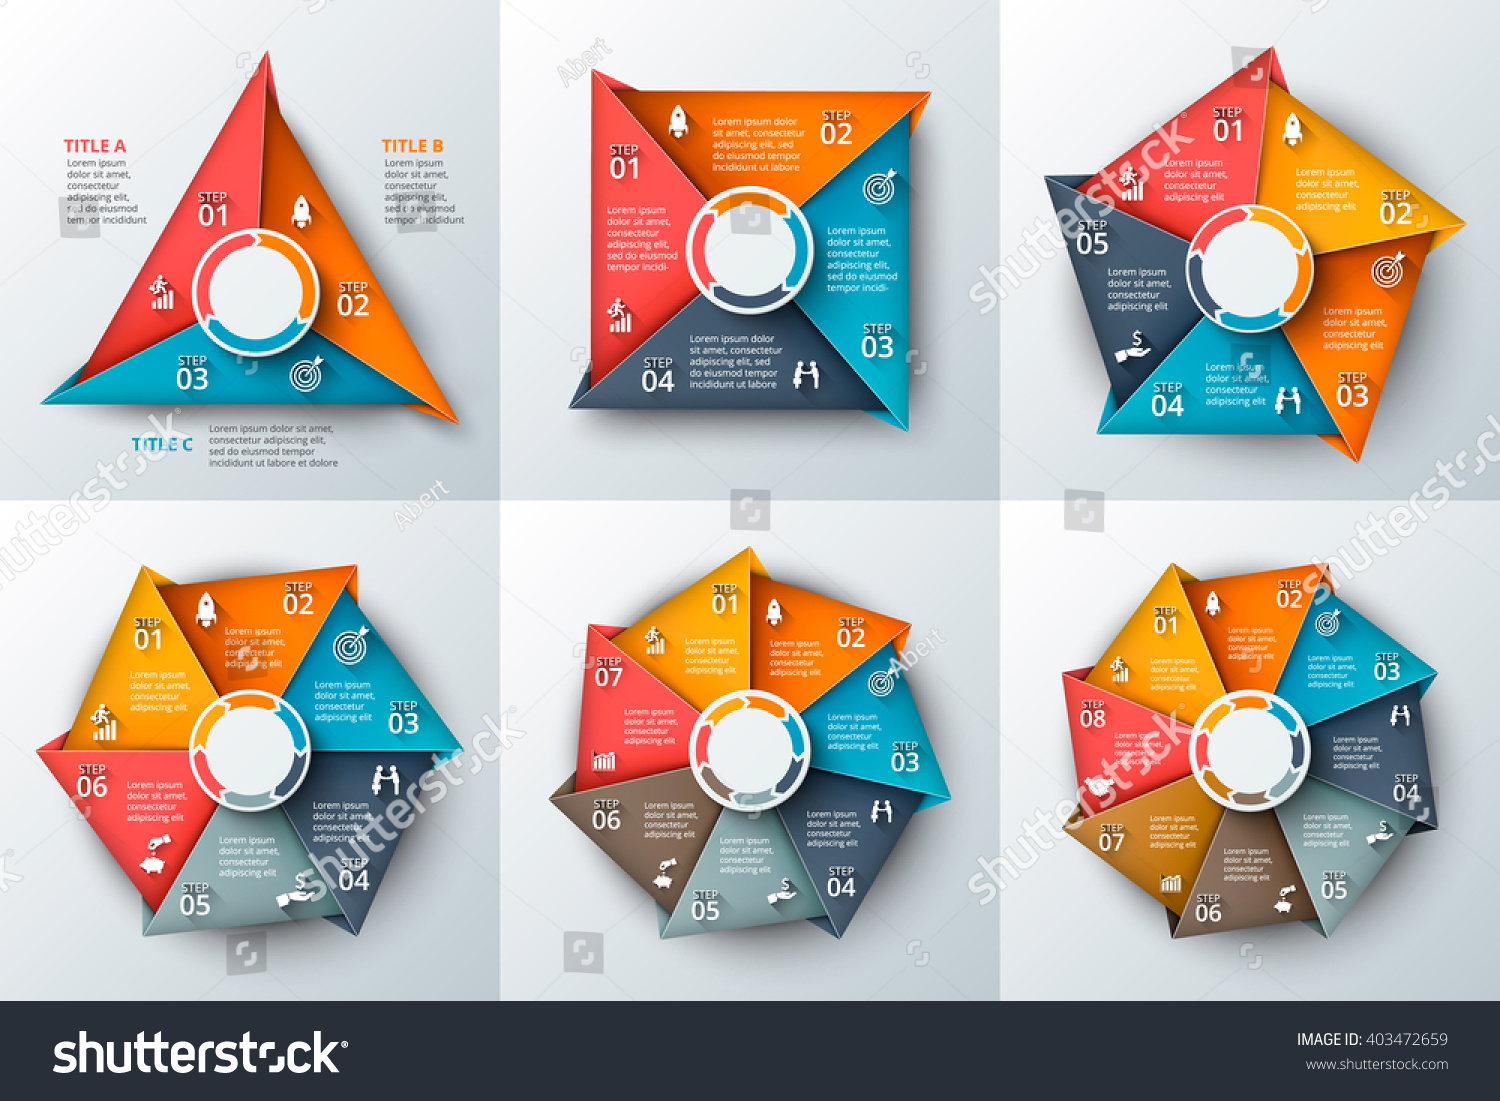 set geometric shapes infographic template cycle stock vector